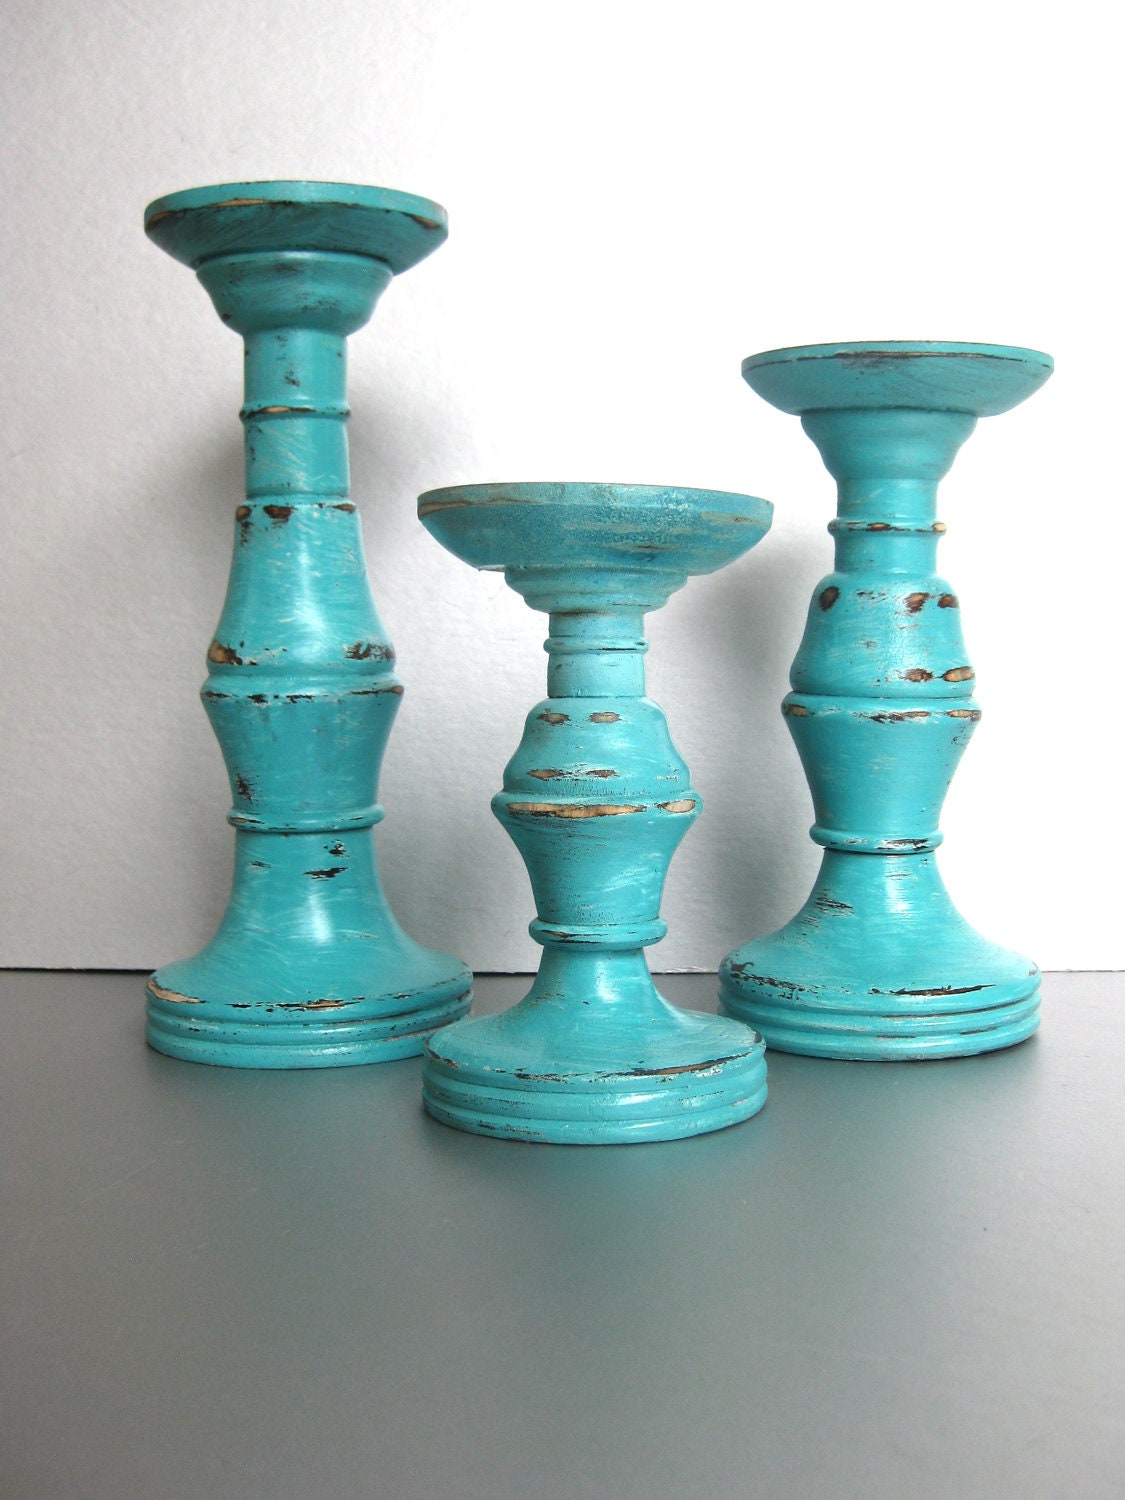 Shop for candle holders & centerpieces at loadingbassqz.cf Browse our unique selection of tealight & votive candle holders, pillar candle holders & more at Pier 1 Imports.